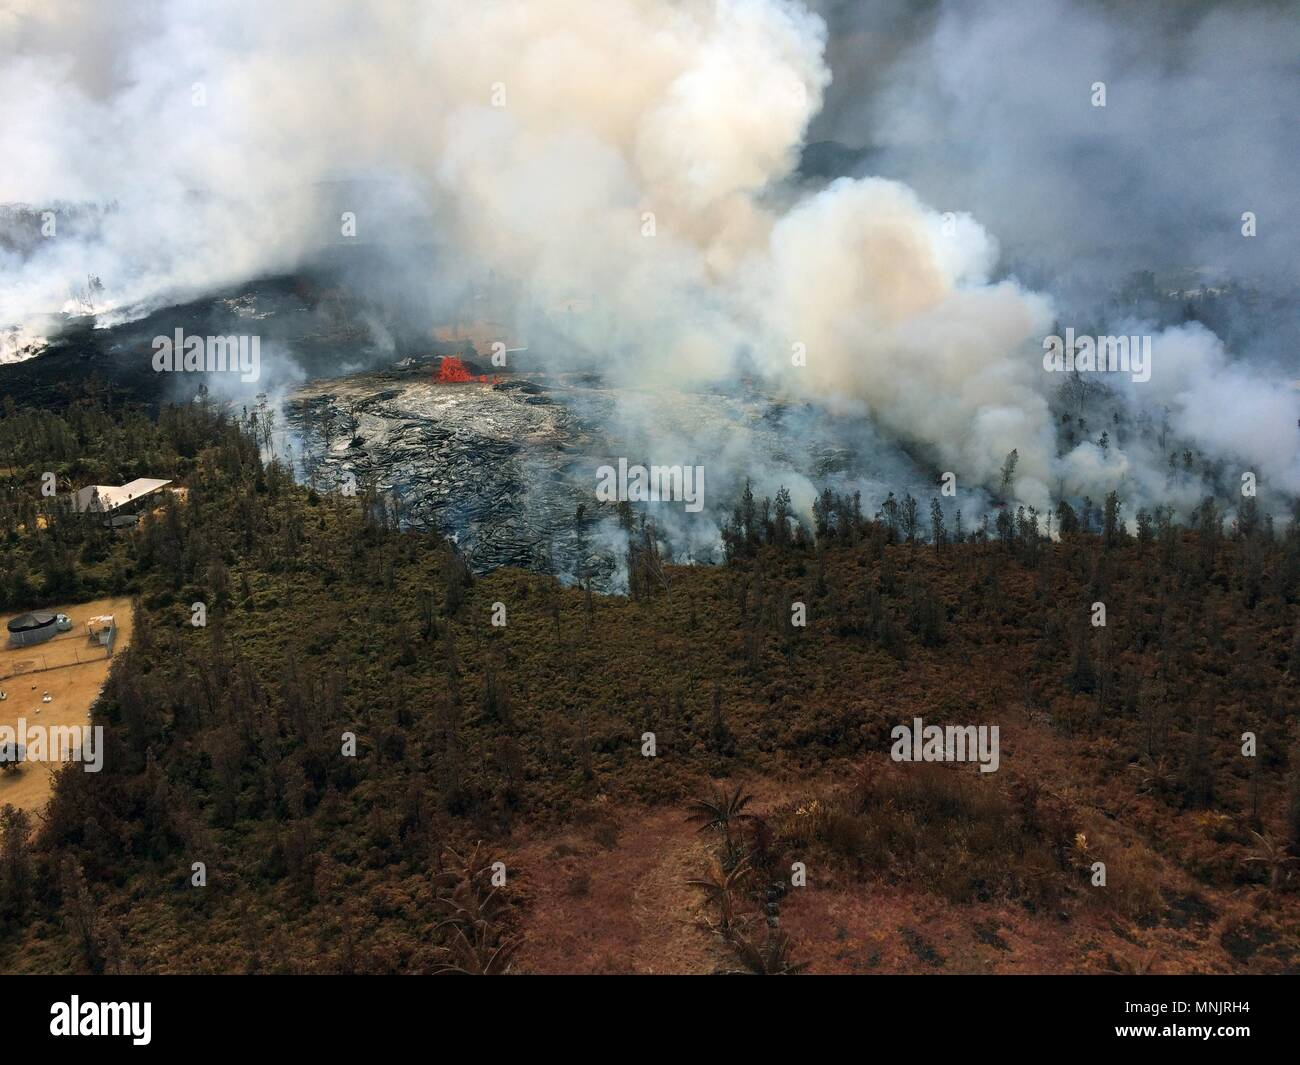 Aerial view of lava flowing and poison gases fissures in Leilani Estates caused by the eruption of the Kilauea volcano May 17, 2018 in Pahoa, Hawaii. - Stock Image